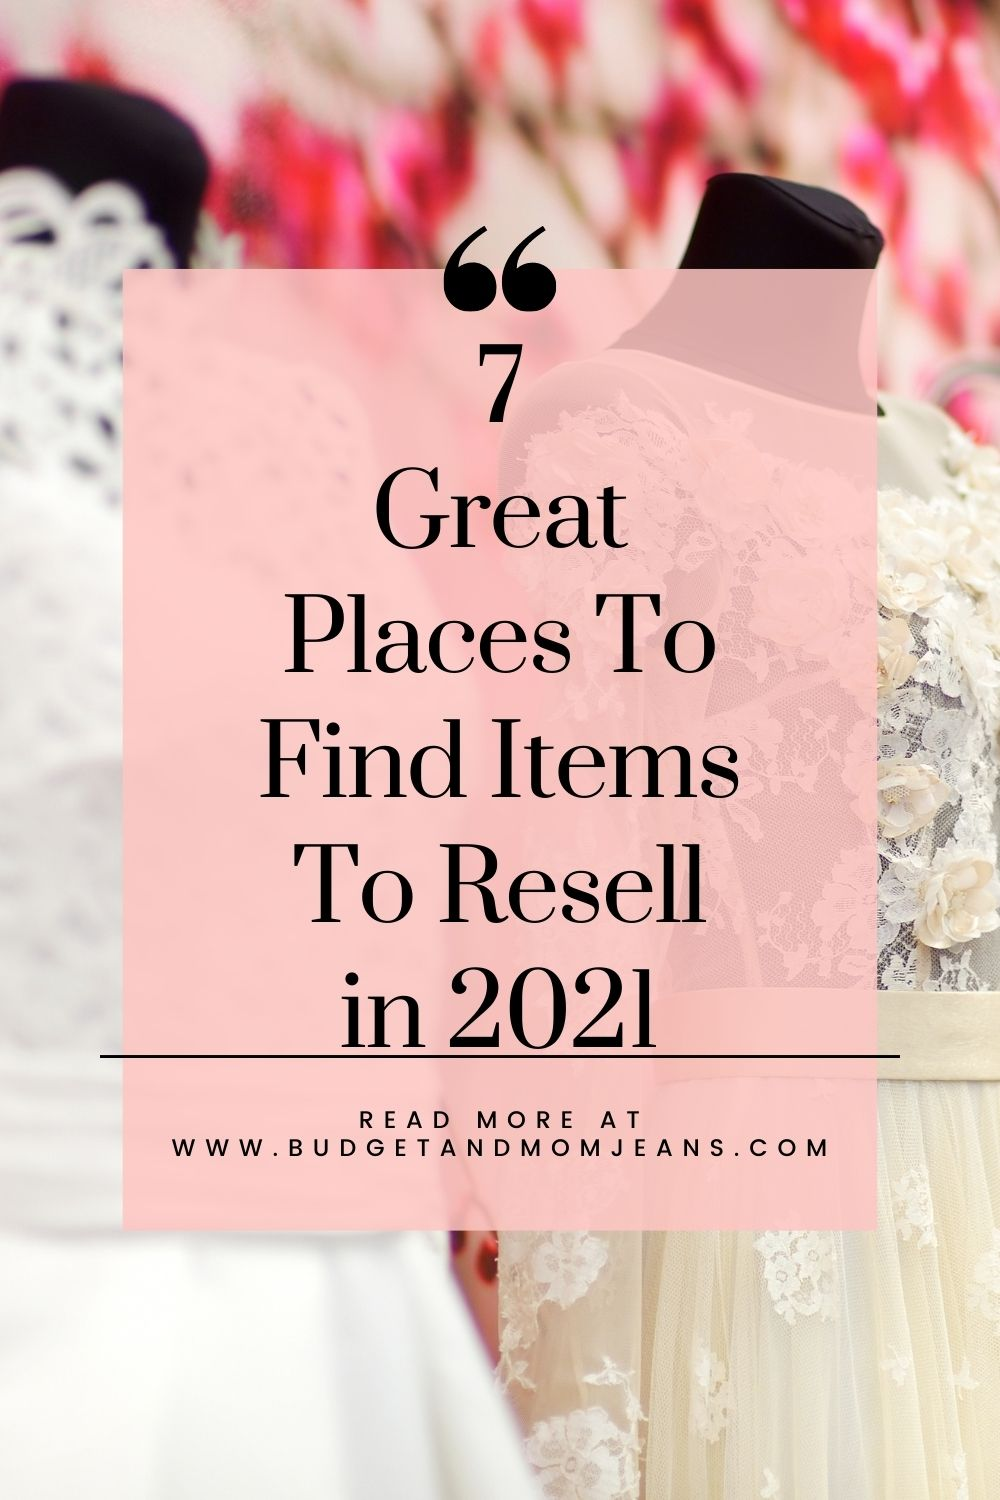 7 Great Places To Find Items To Resell in 2021